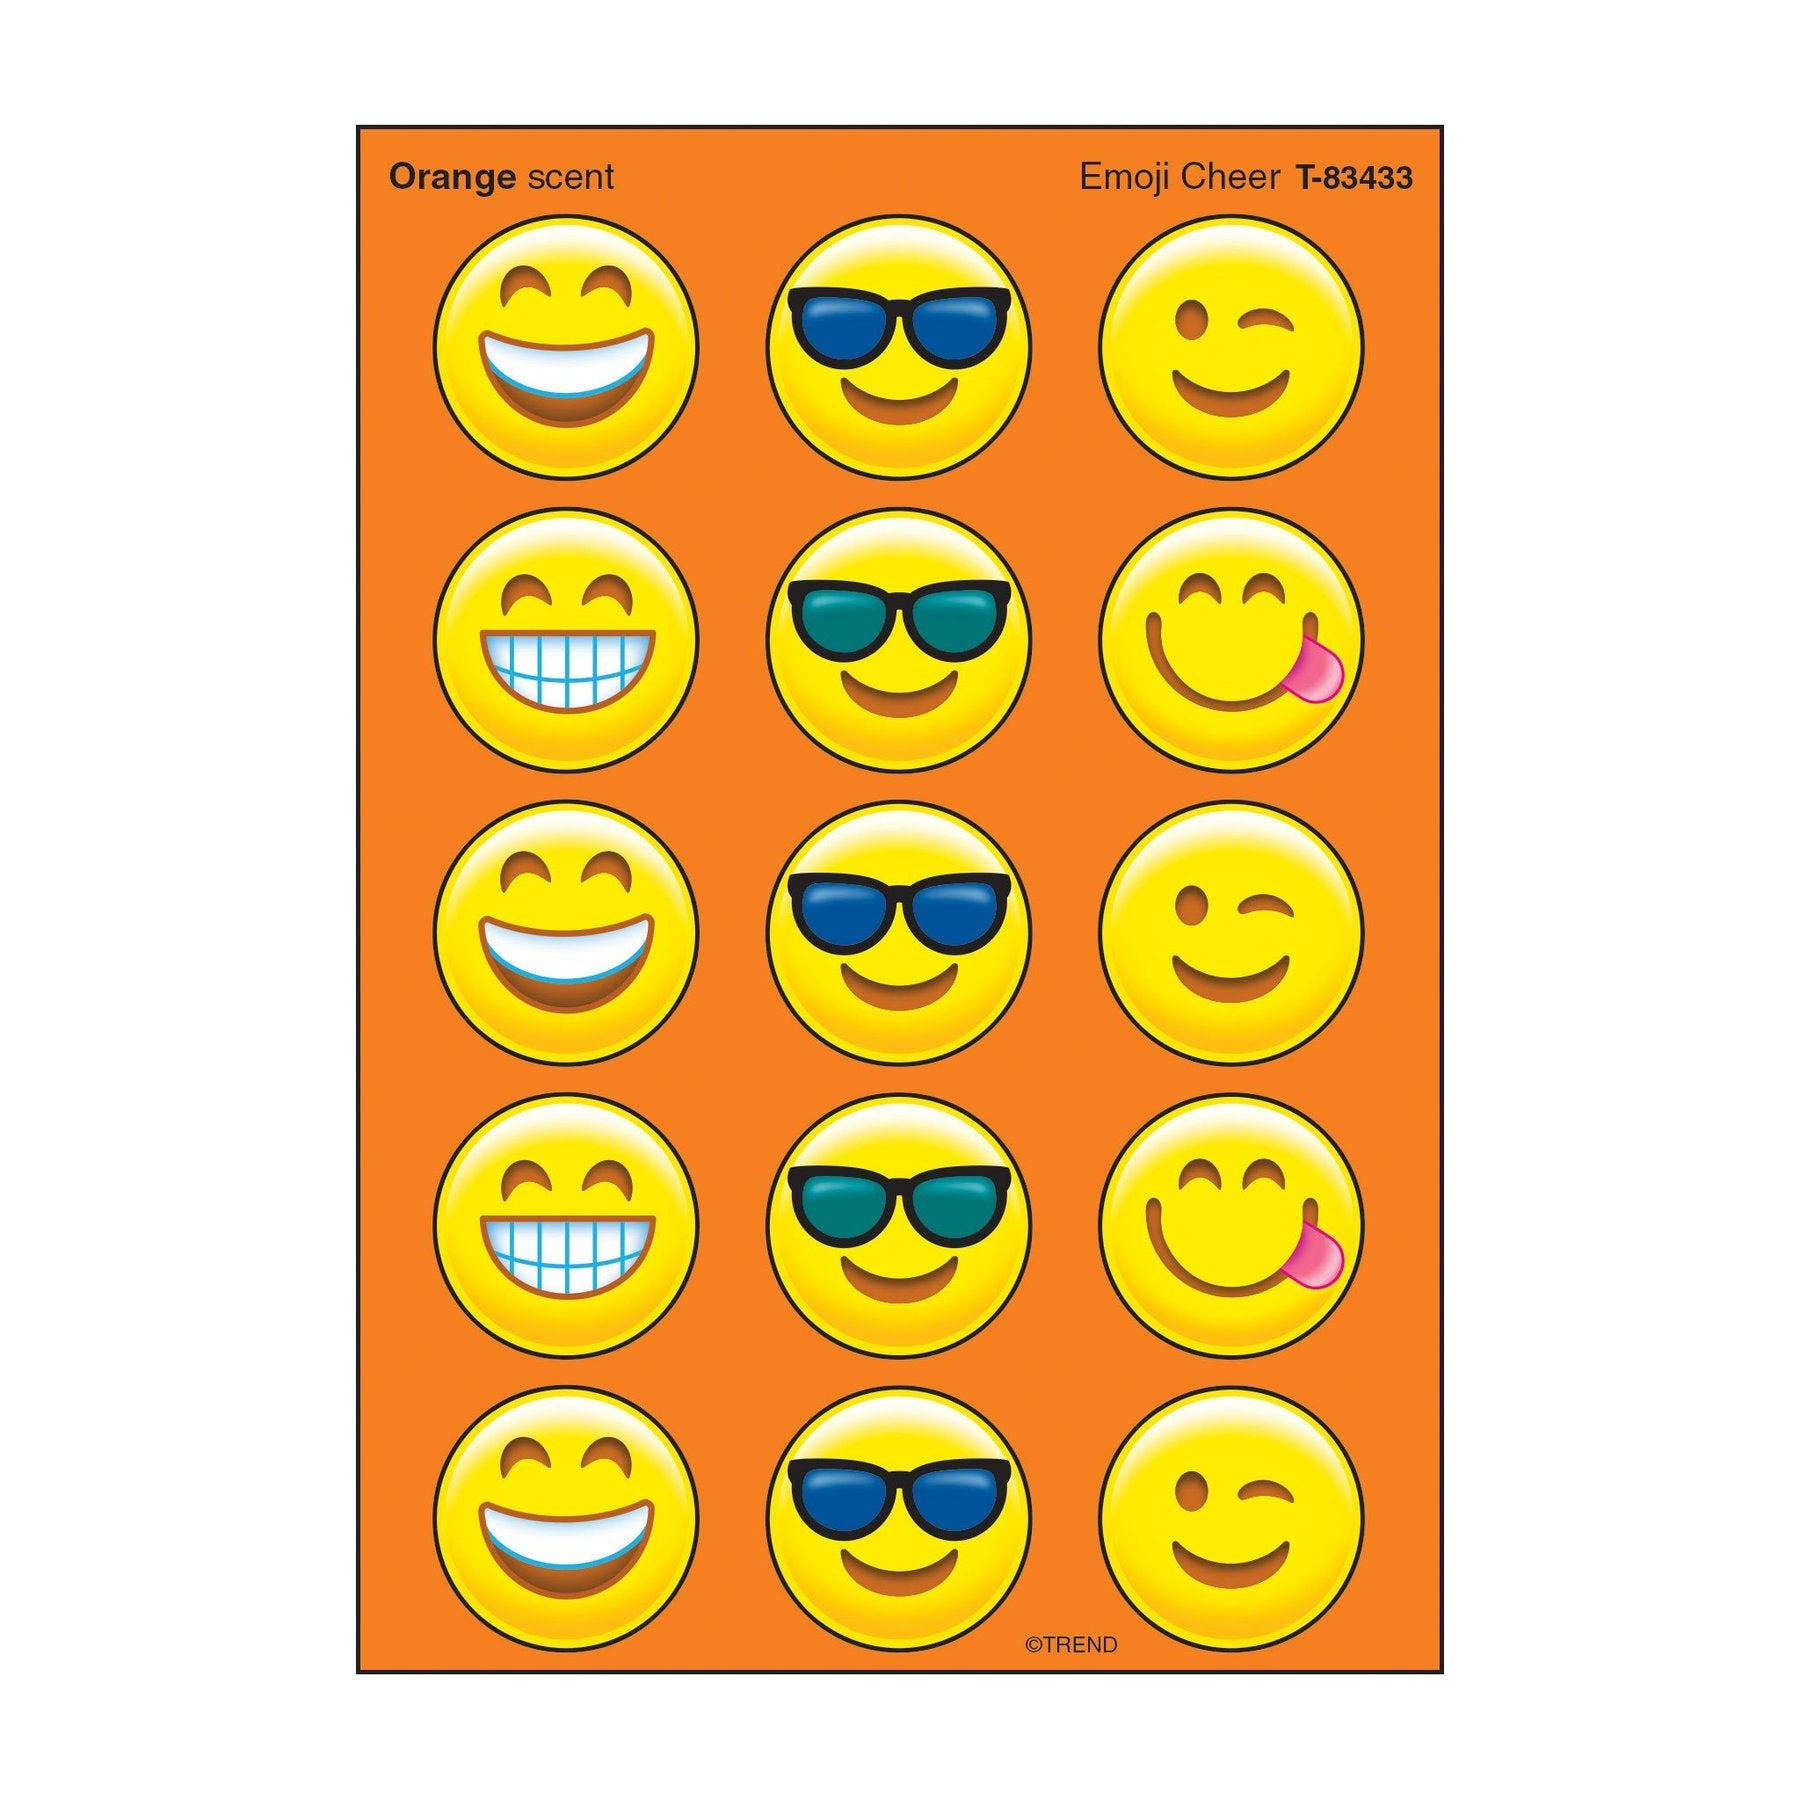 Emoji Cheer, Orange scent Scratch 'n Sniff Stinky Stickers® – Large Round